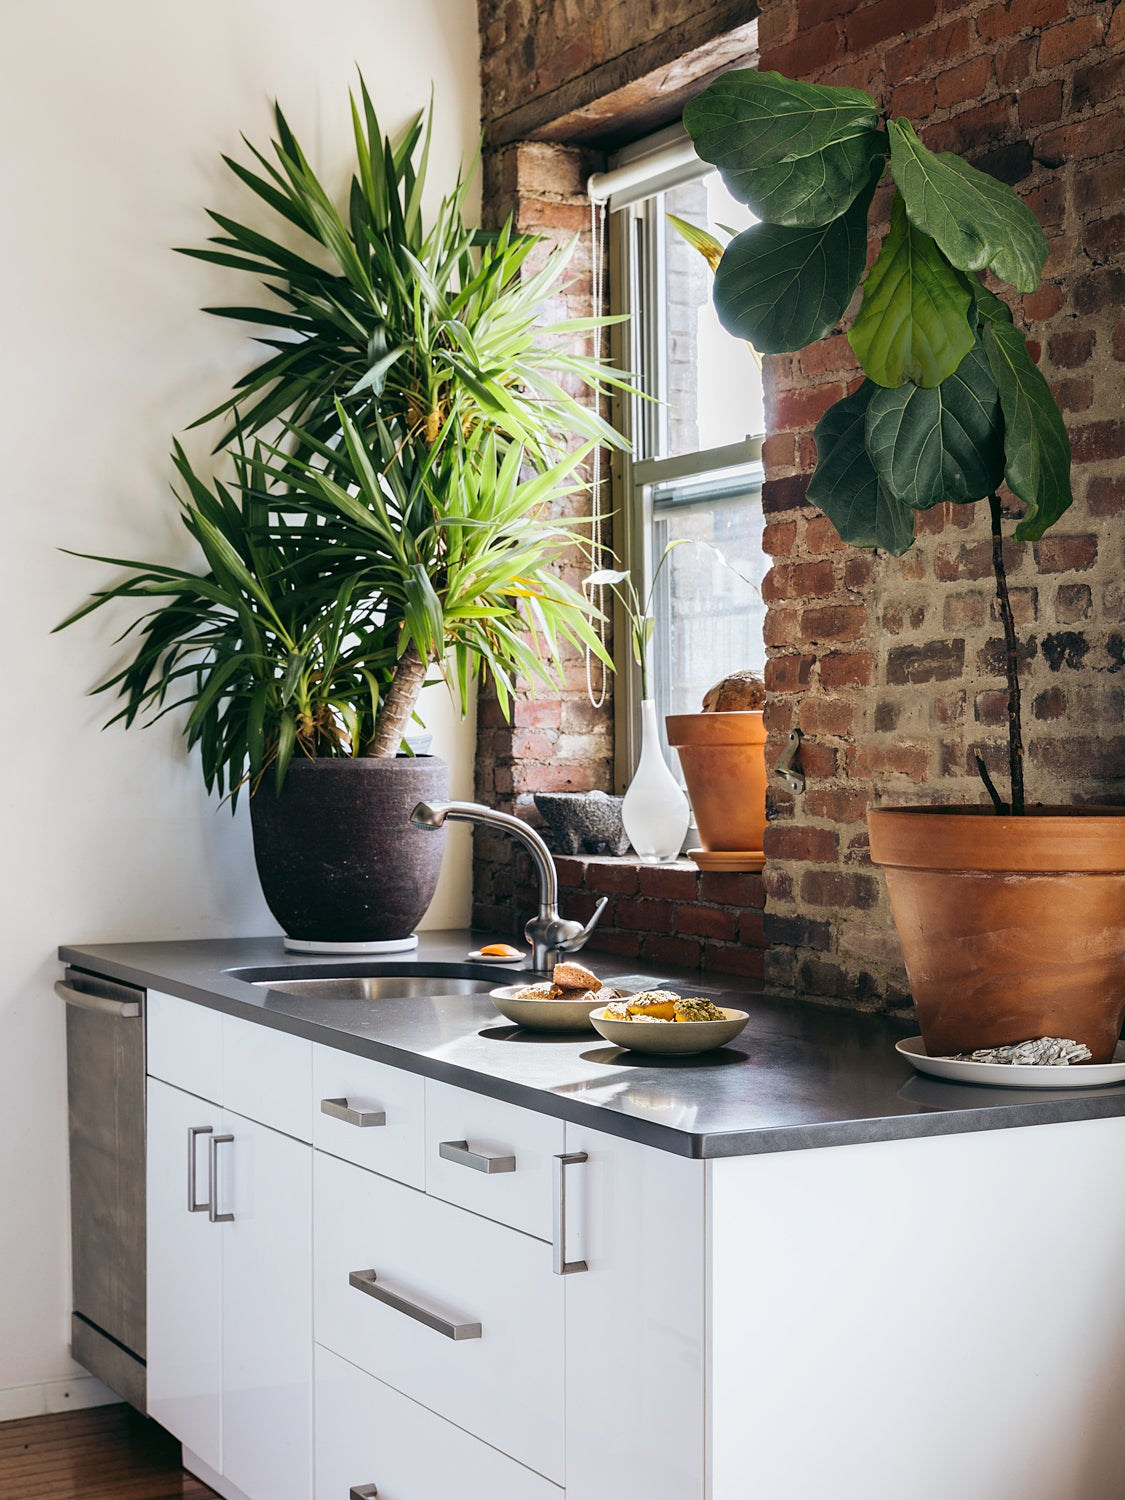 Kitchen counter with large plant